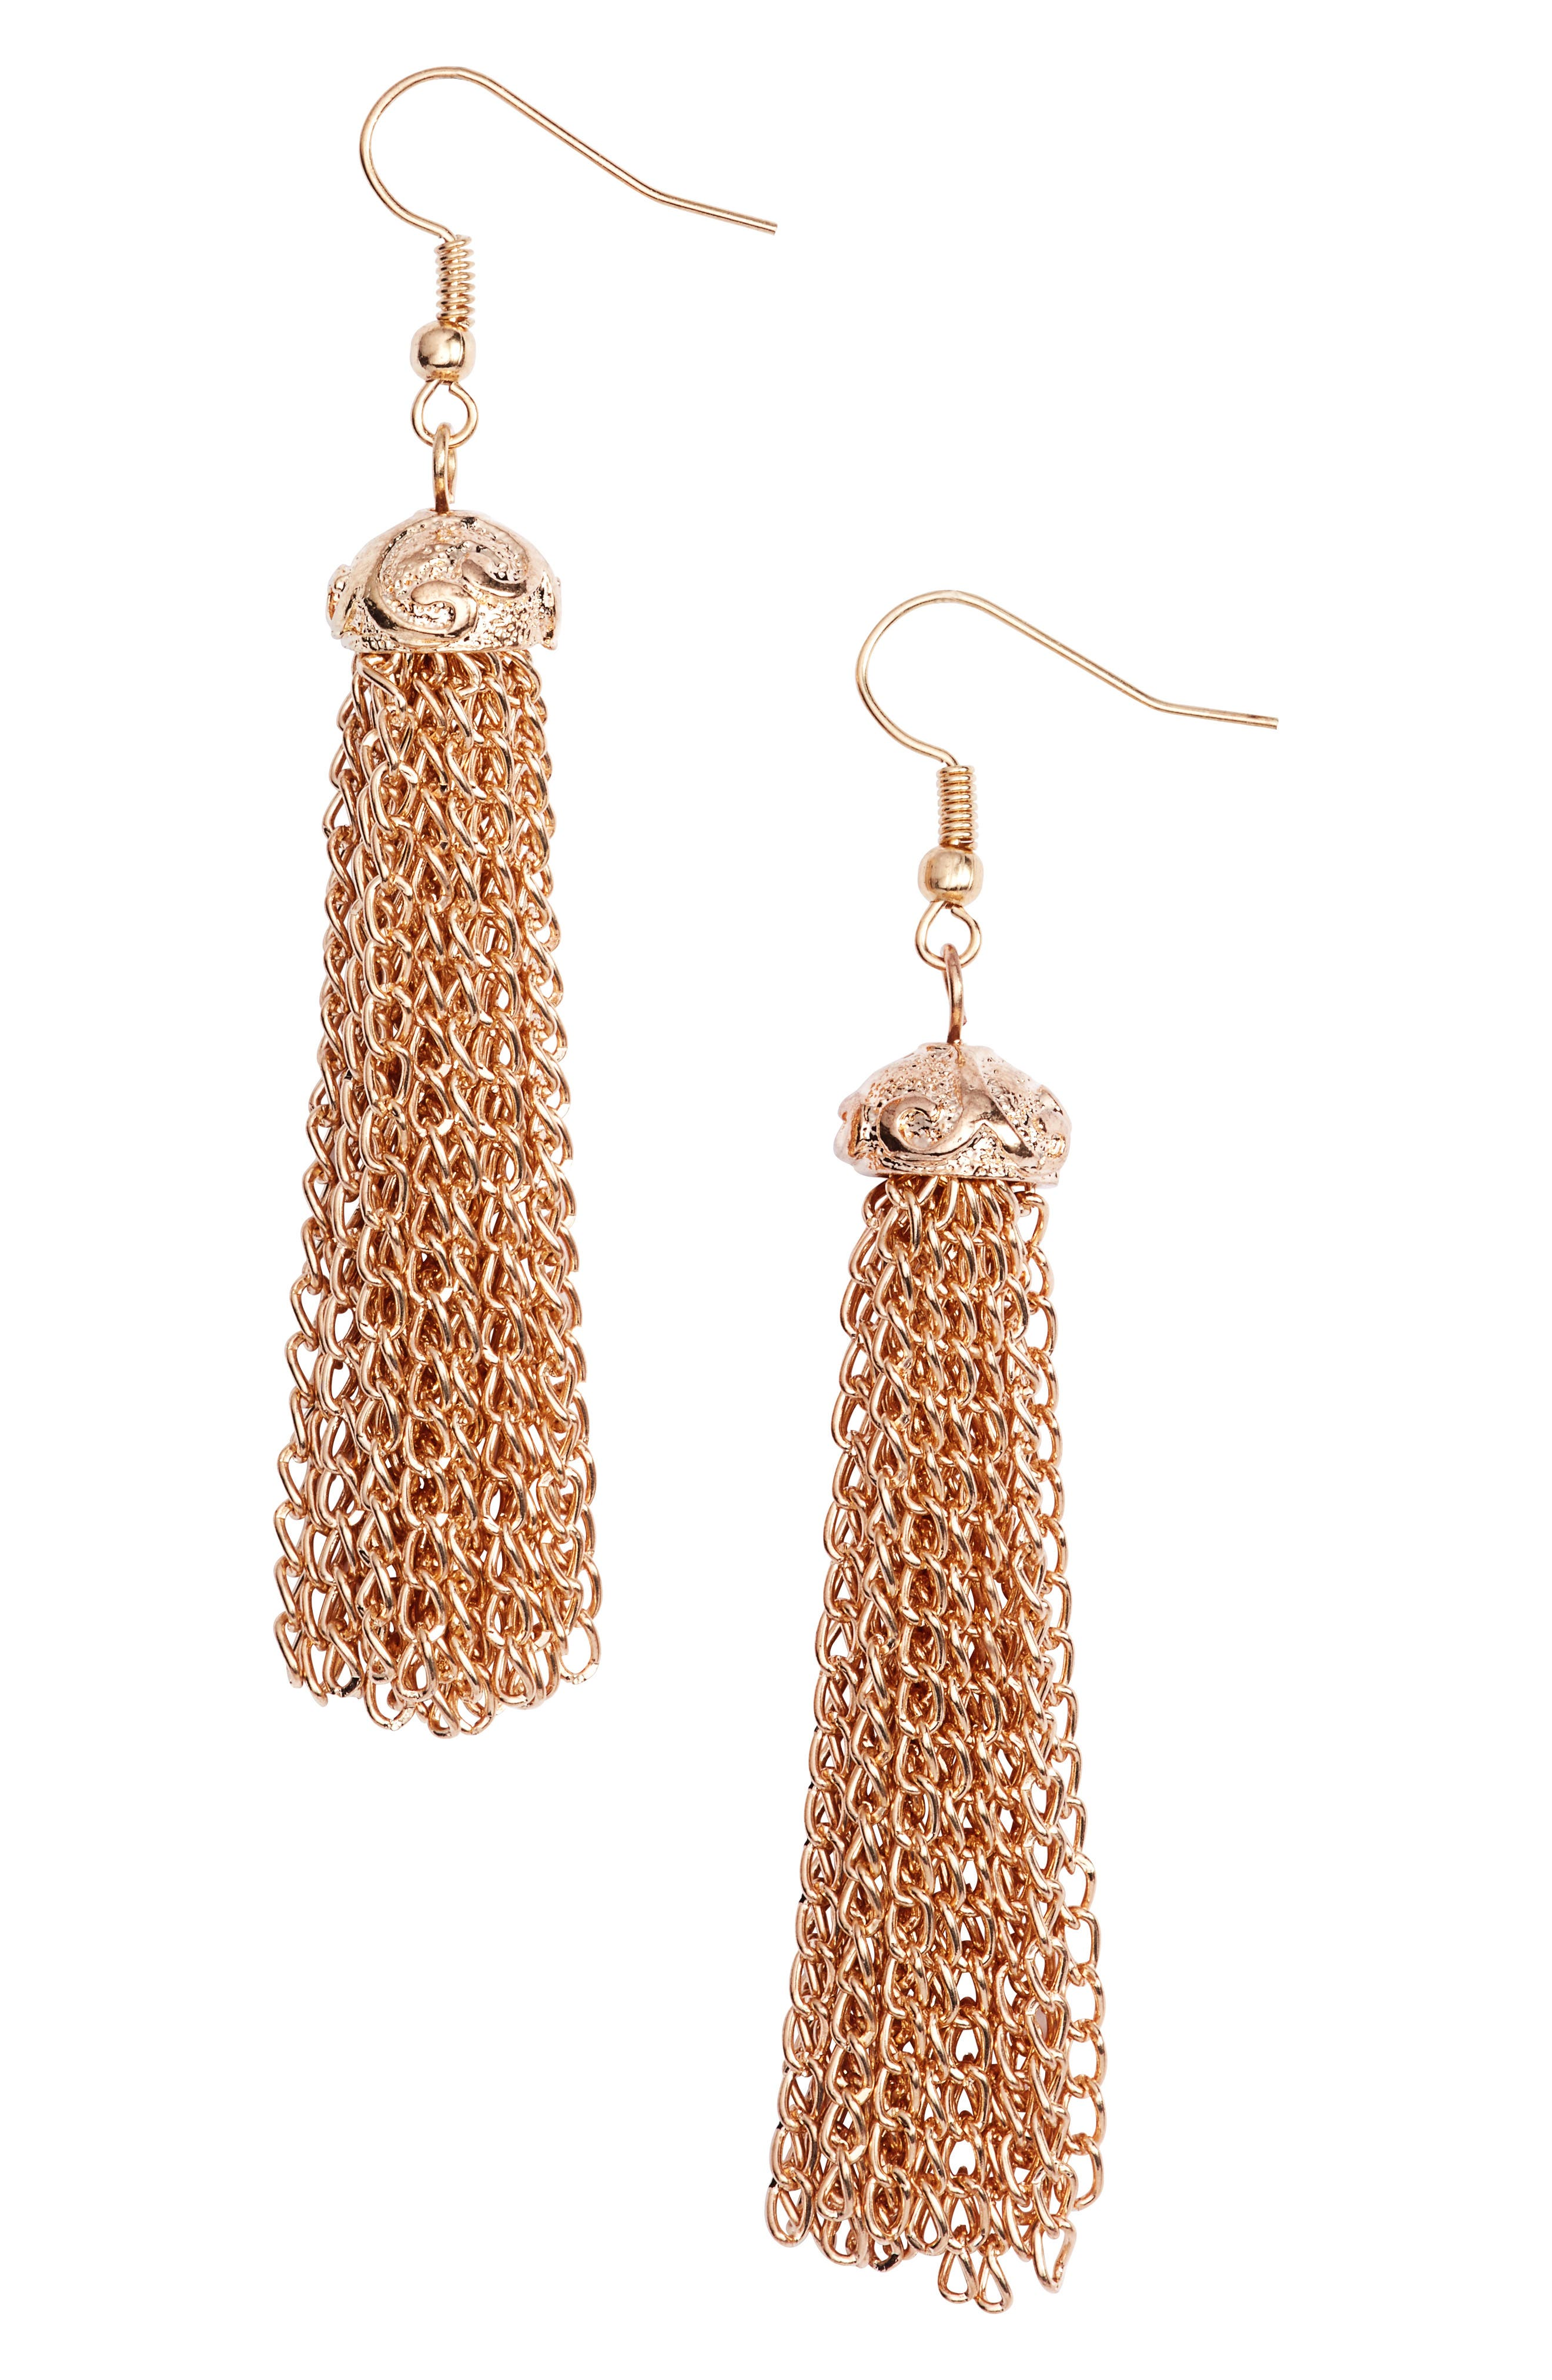 ELISE M. Fortuna Chain Tassel Earrings